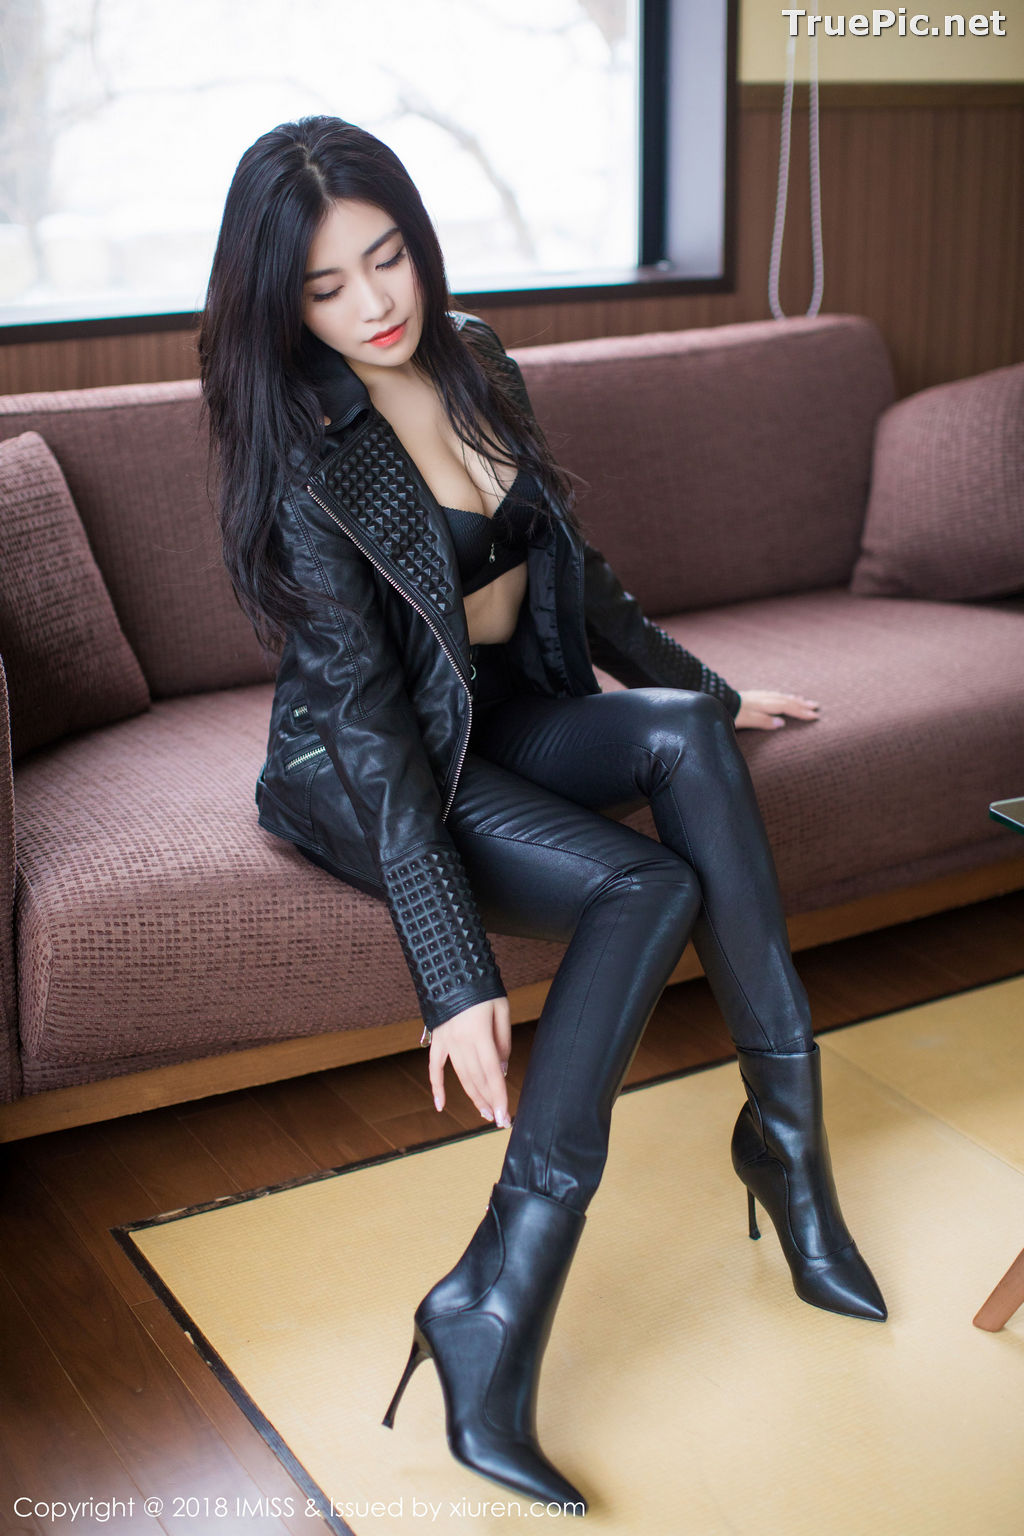 Image IMISS Vol.213 - Chinese Model - Sabrina (Xu Nuo 许诺) - Sexy Black Women - TruePic.net - Picture-2